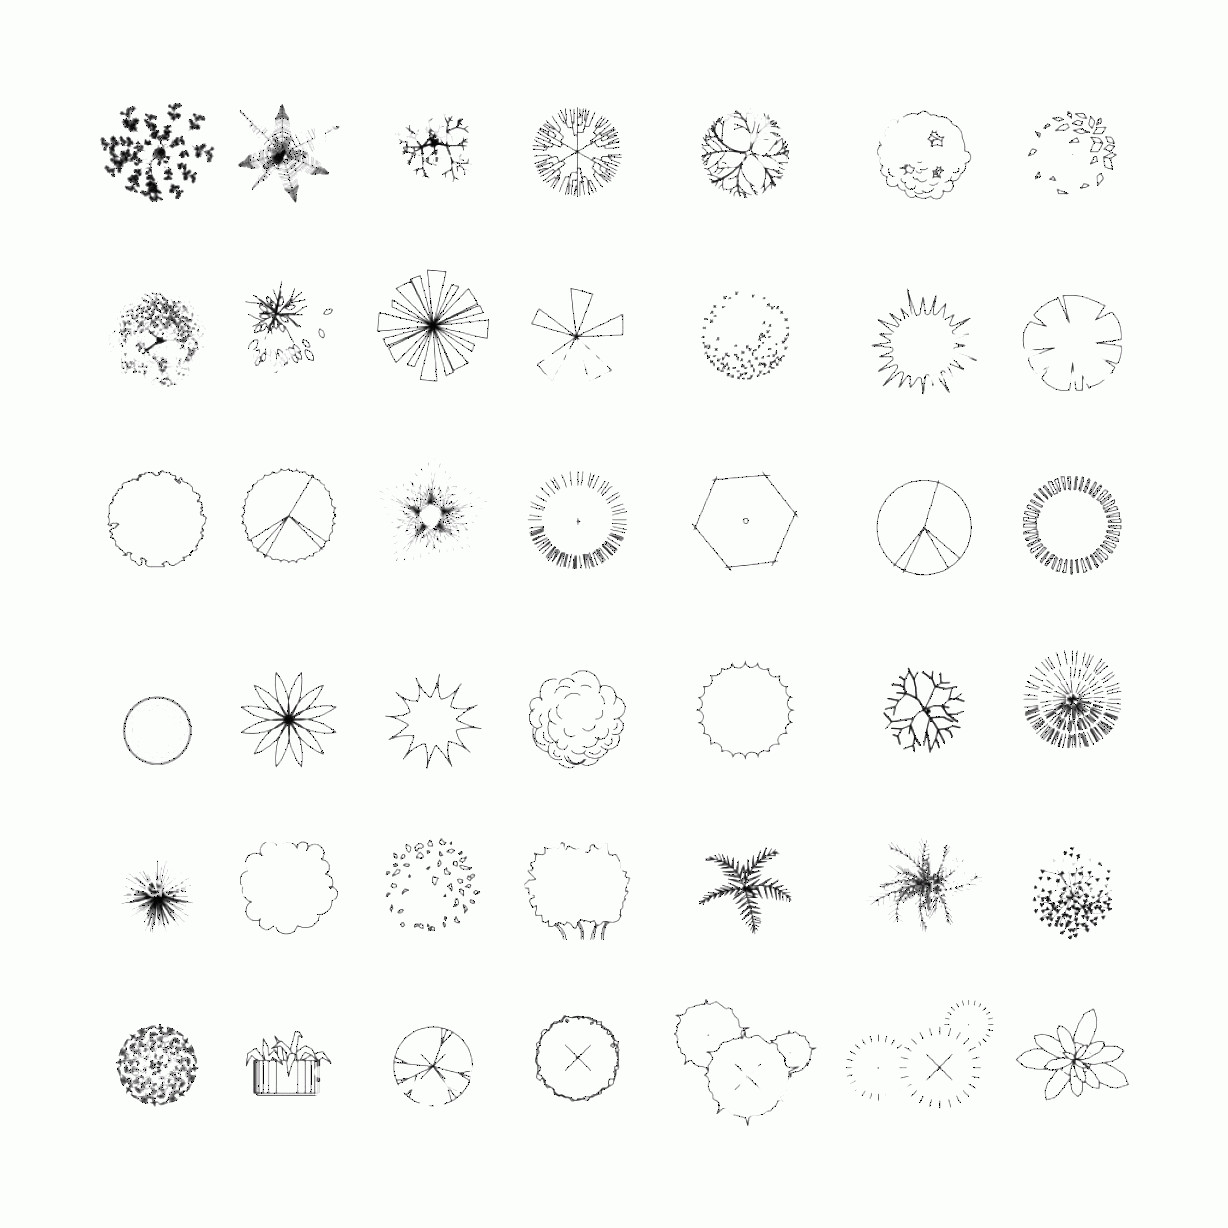 Vector Tree Symbols Plan: Top View And Side View Set Of Graphics Trees Elements Outline Symbol For Gm